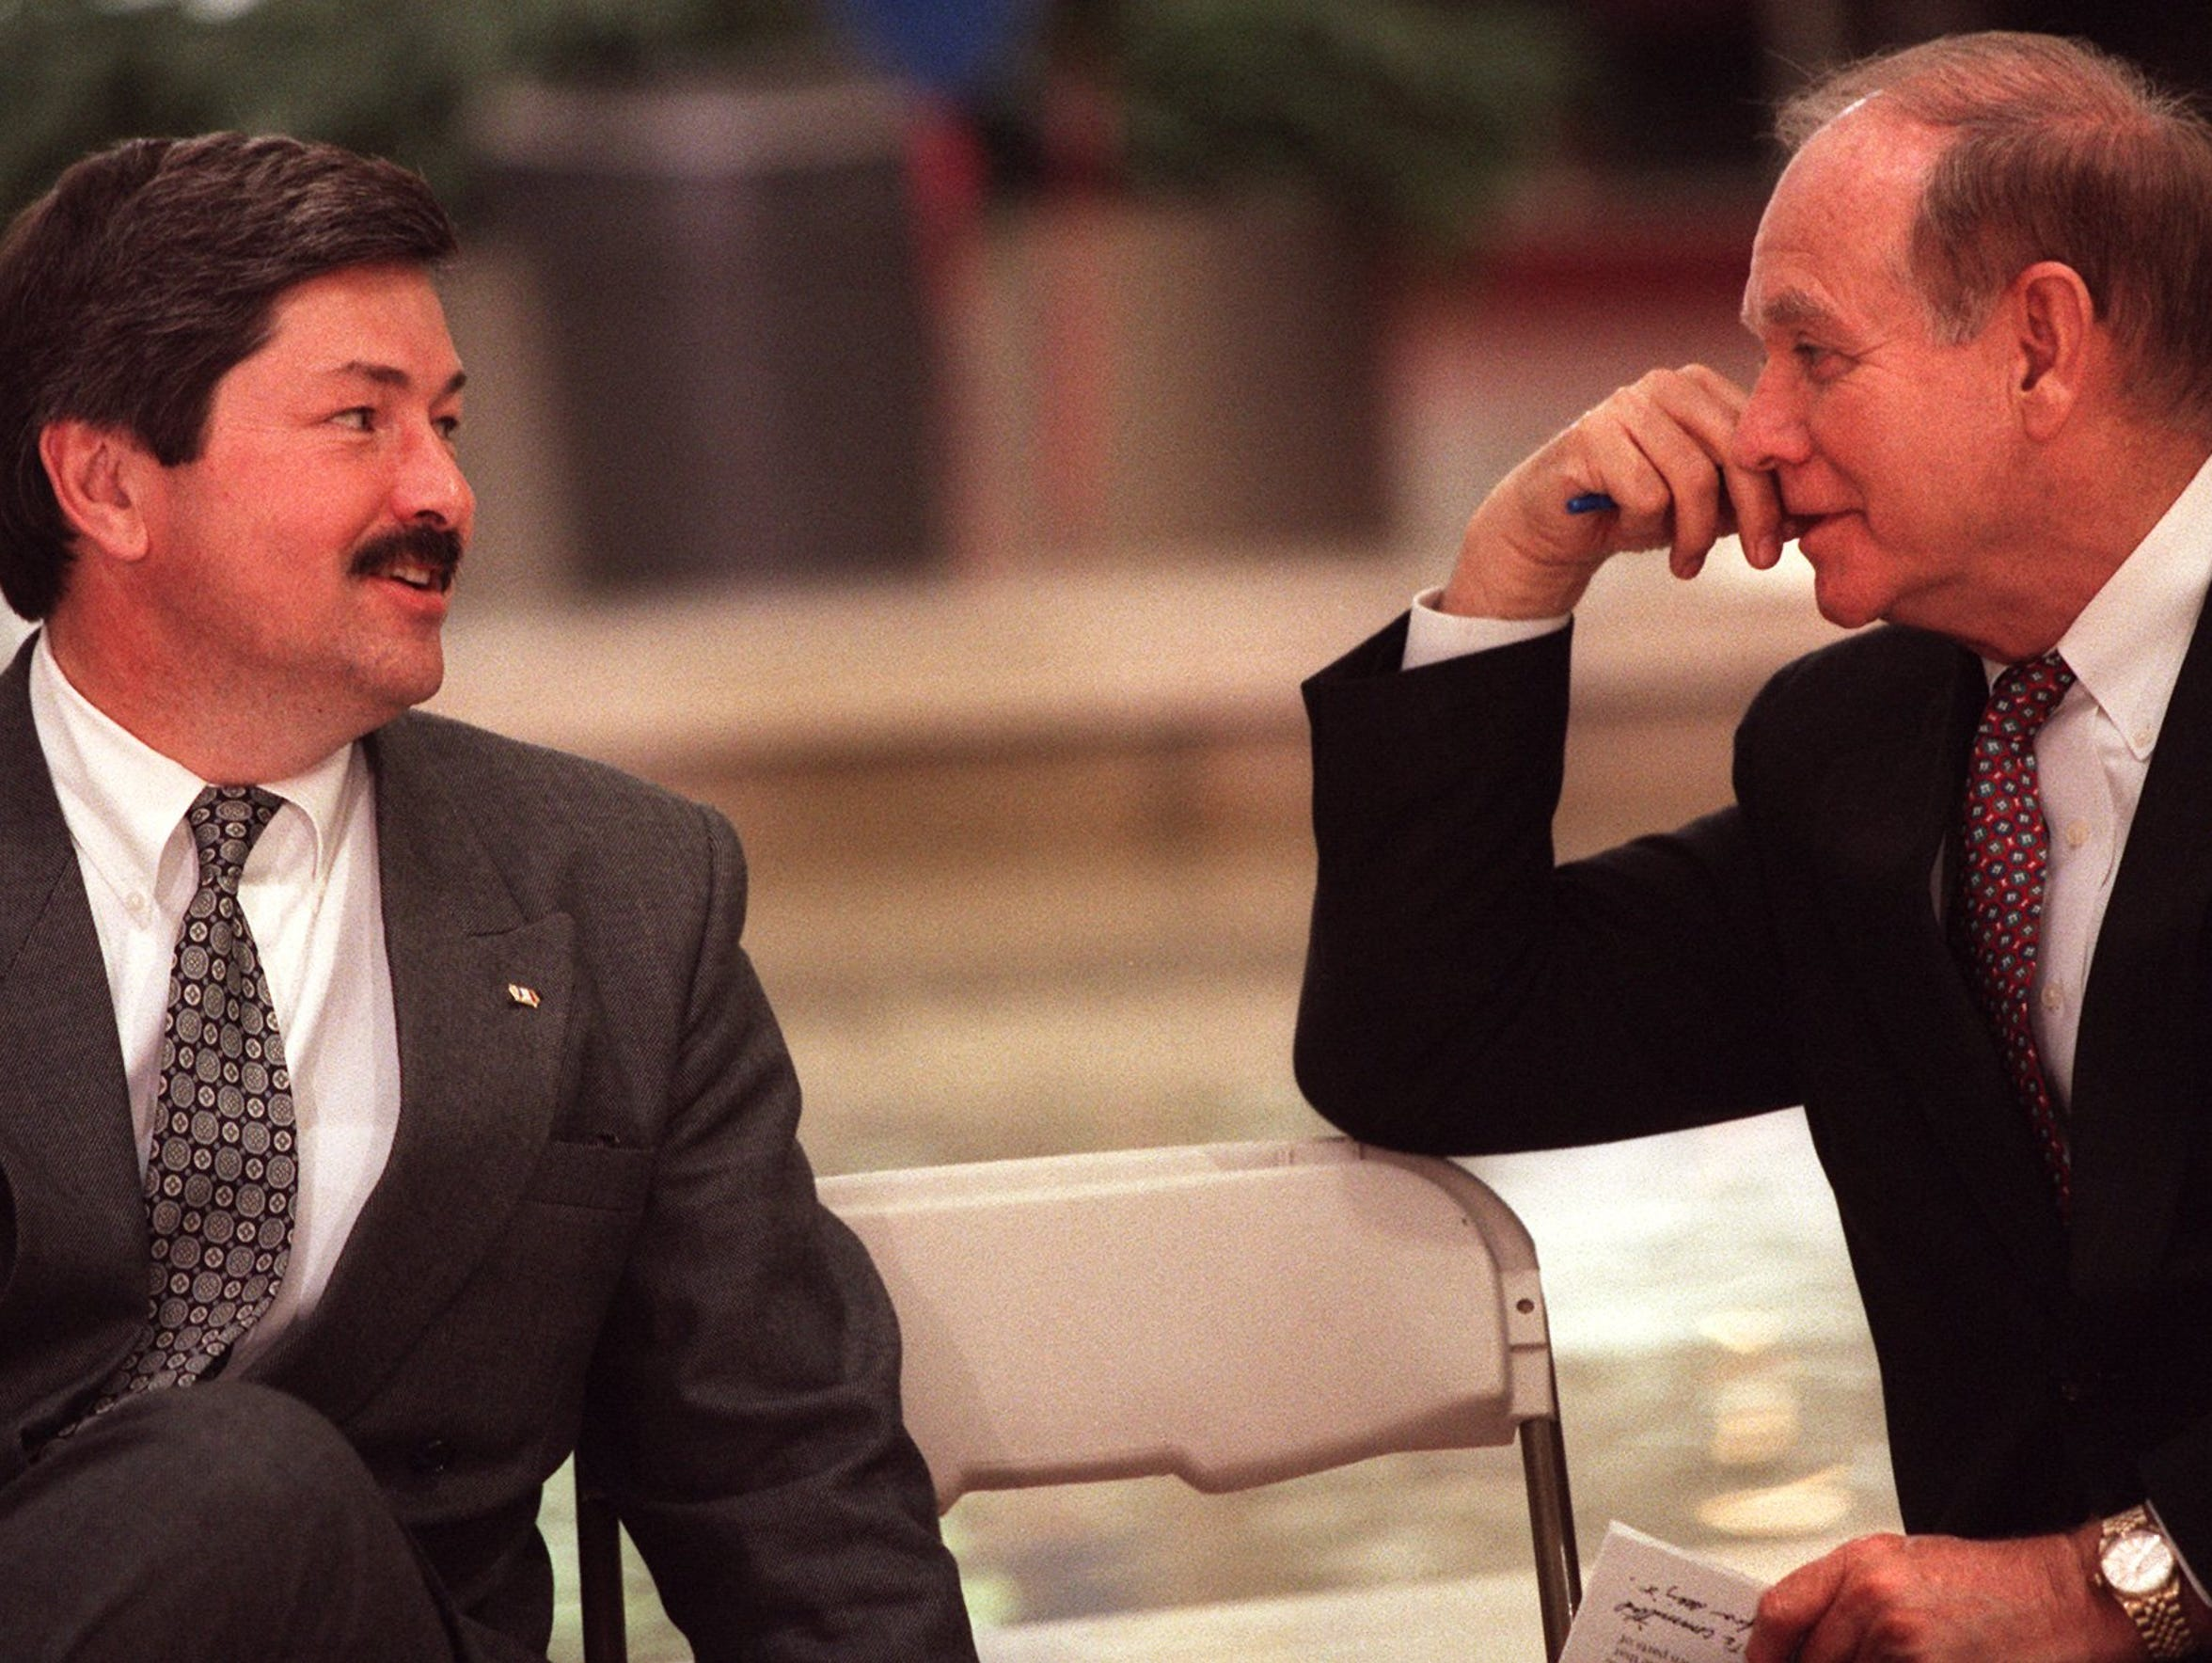 From 1996: Gov. Terry Branstad, left, visits with former